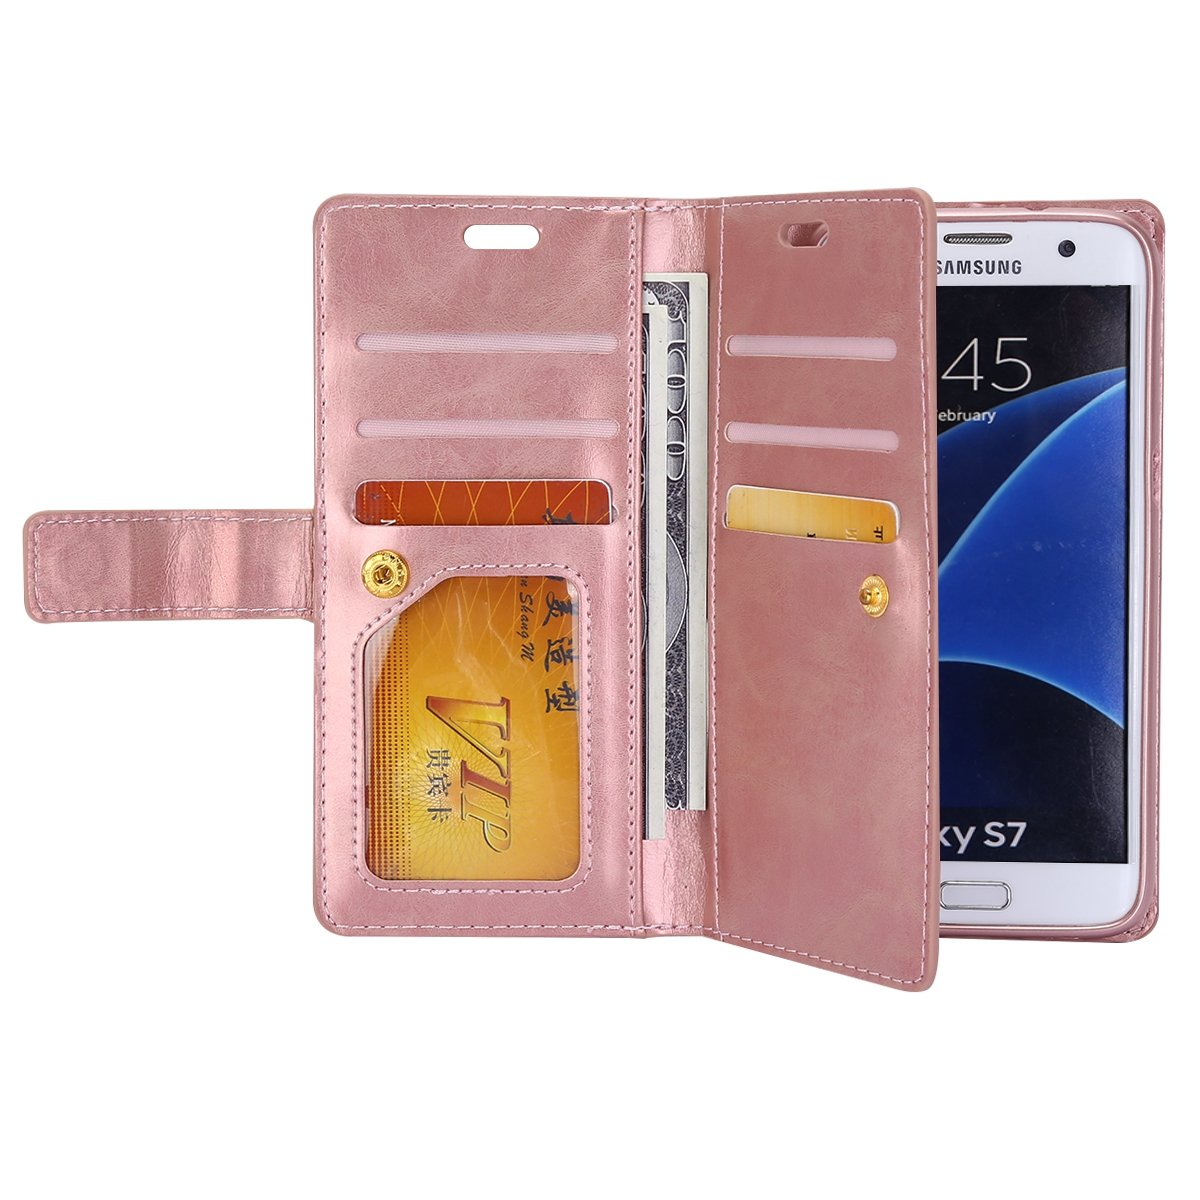 Black Robinsoni Case Compatible with Samsung Galaxy A5 2017 PU Leather Wallet Case Gel Bumper Protective Cover Phone Case with Zipper Folio Flip Kickstand Notebook Cover Case for Samsung A5 2017